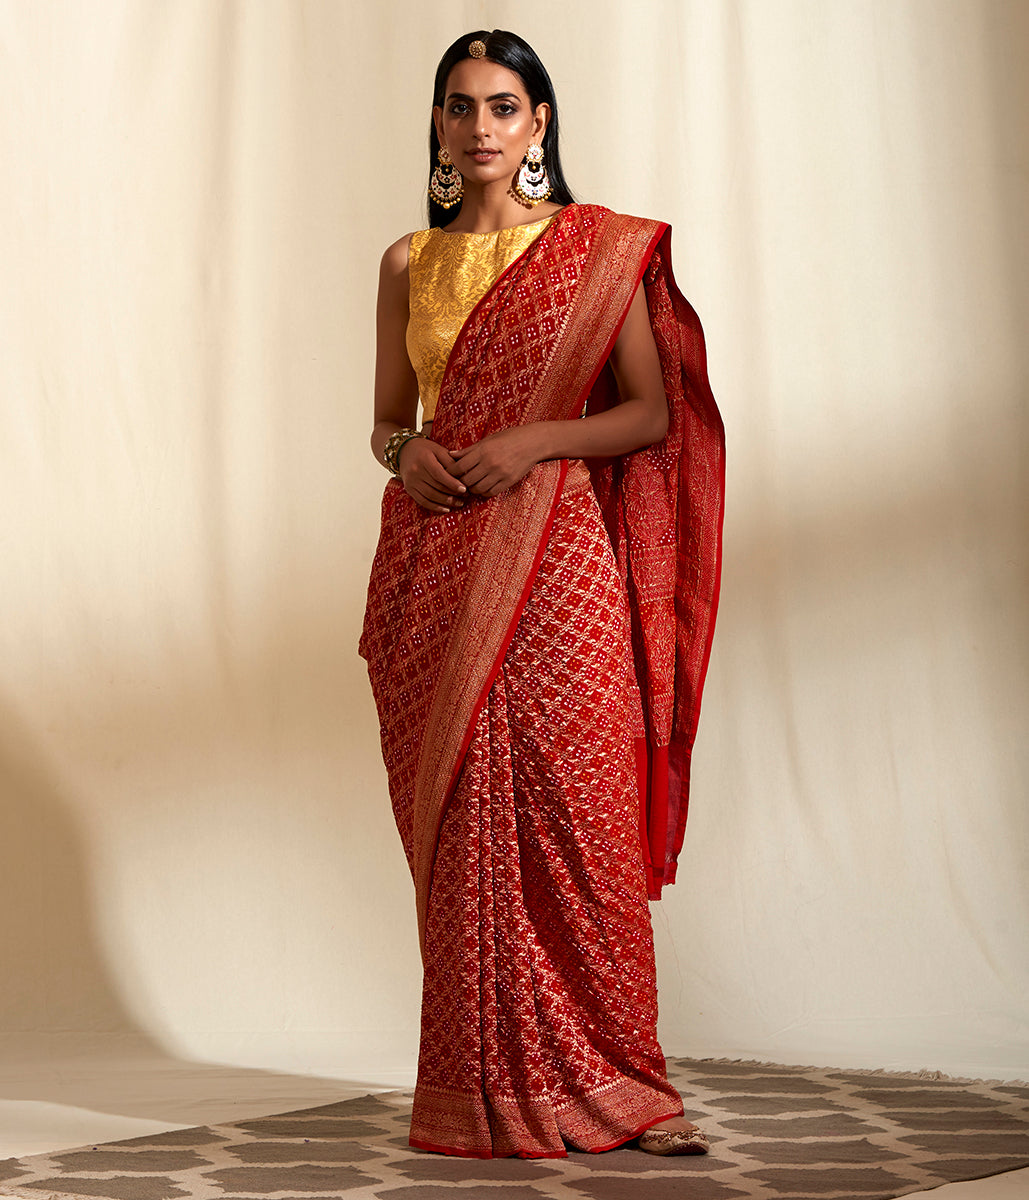 Handwoven Banarasi Bandhej Double Zari Saree in Red